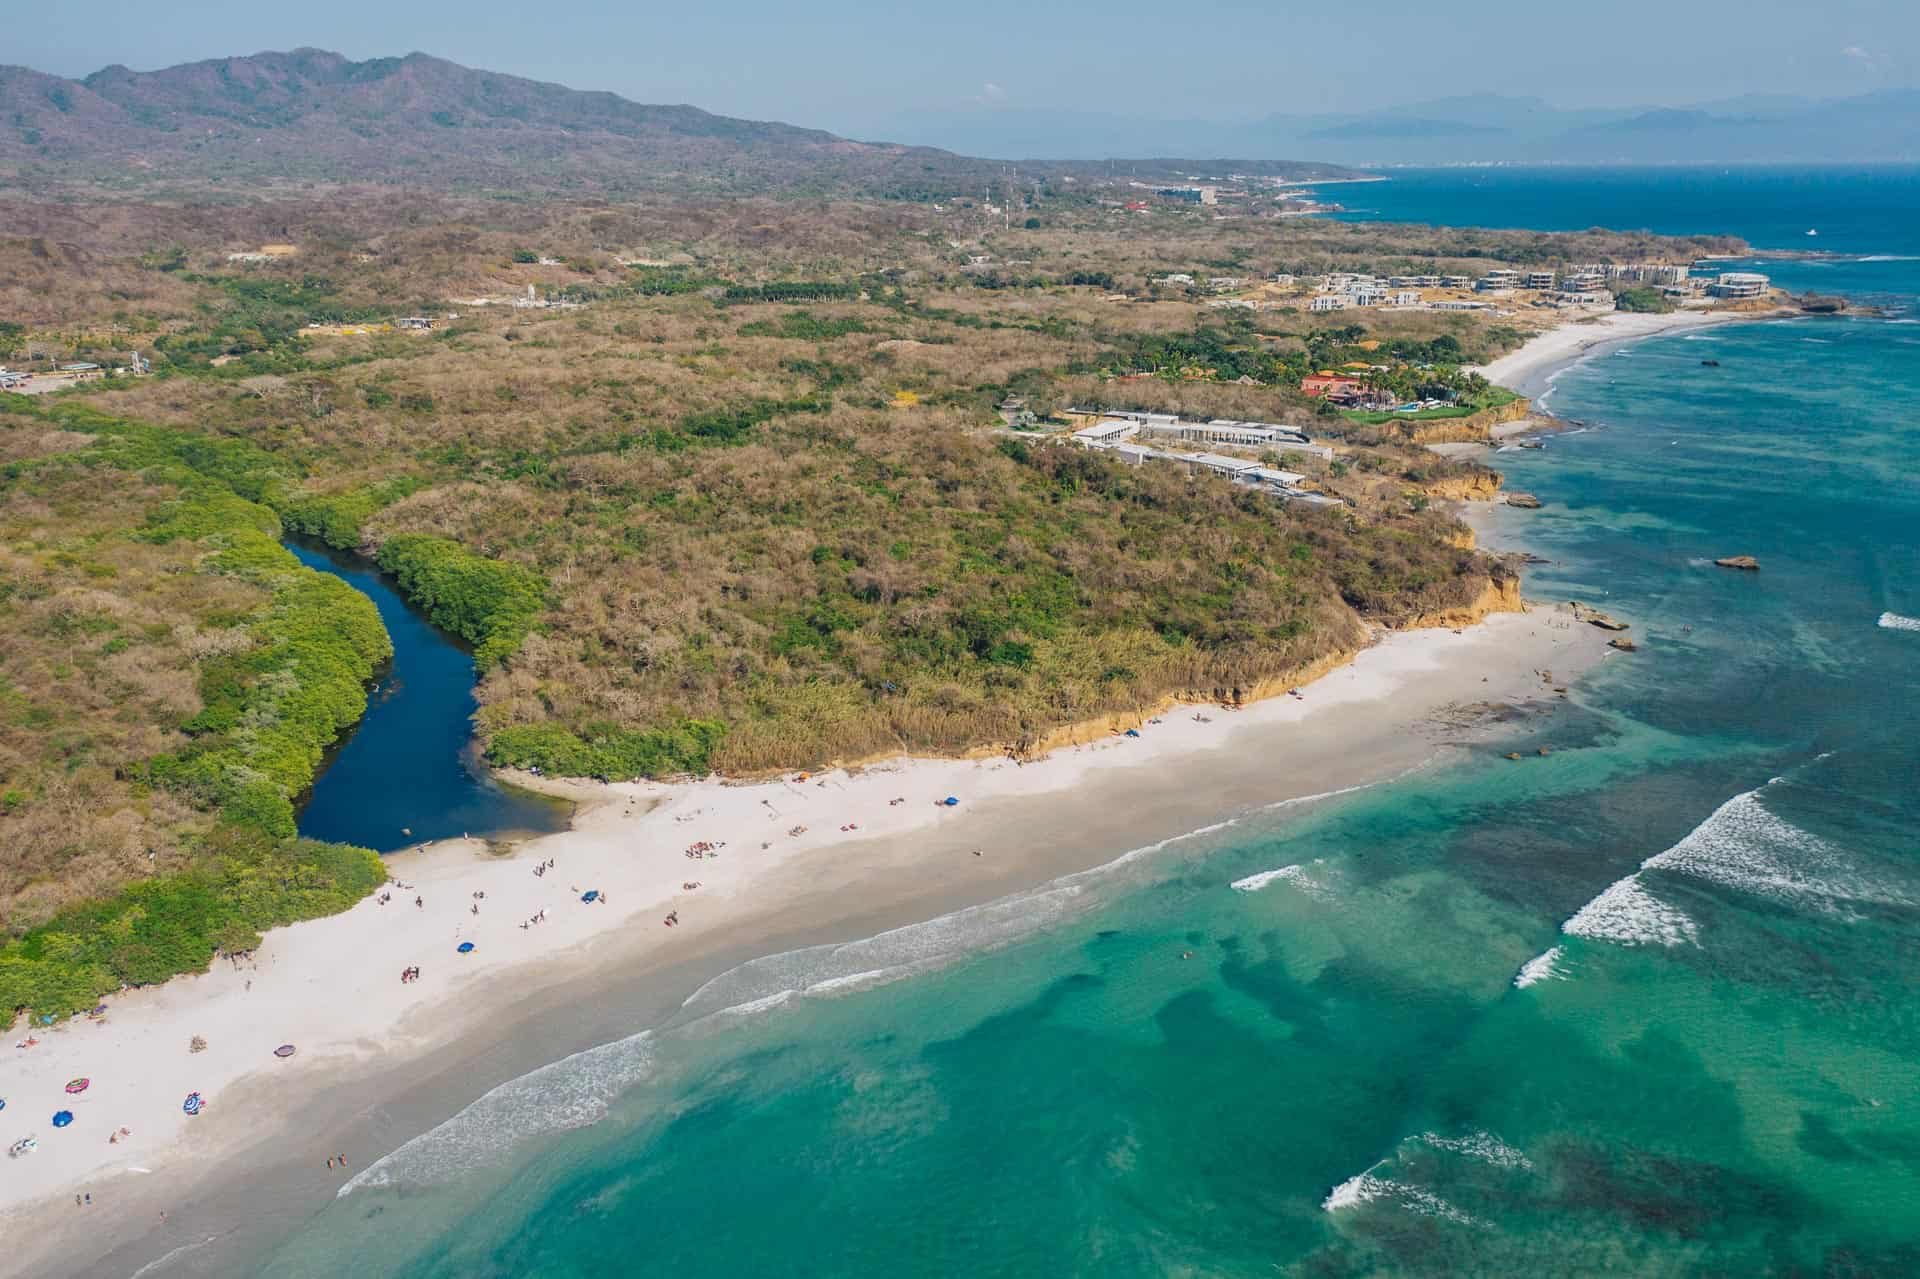 playa la lancha, things to do in sayulita, sayulita mexico, what to do in sayulita, sayulita